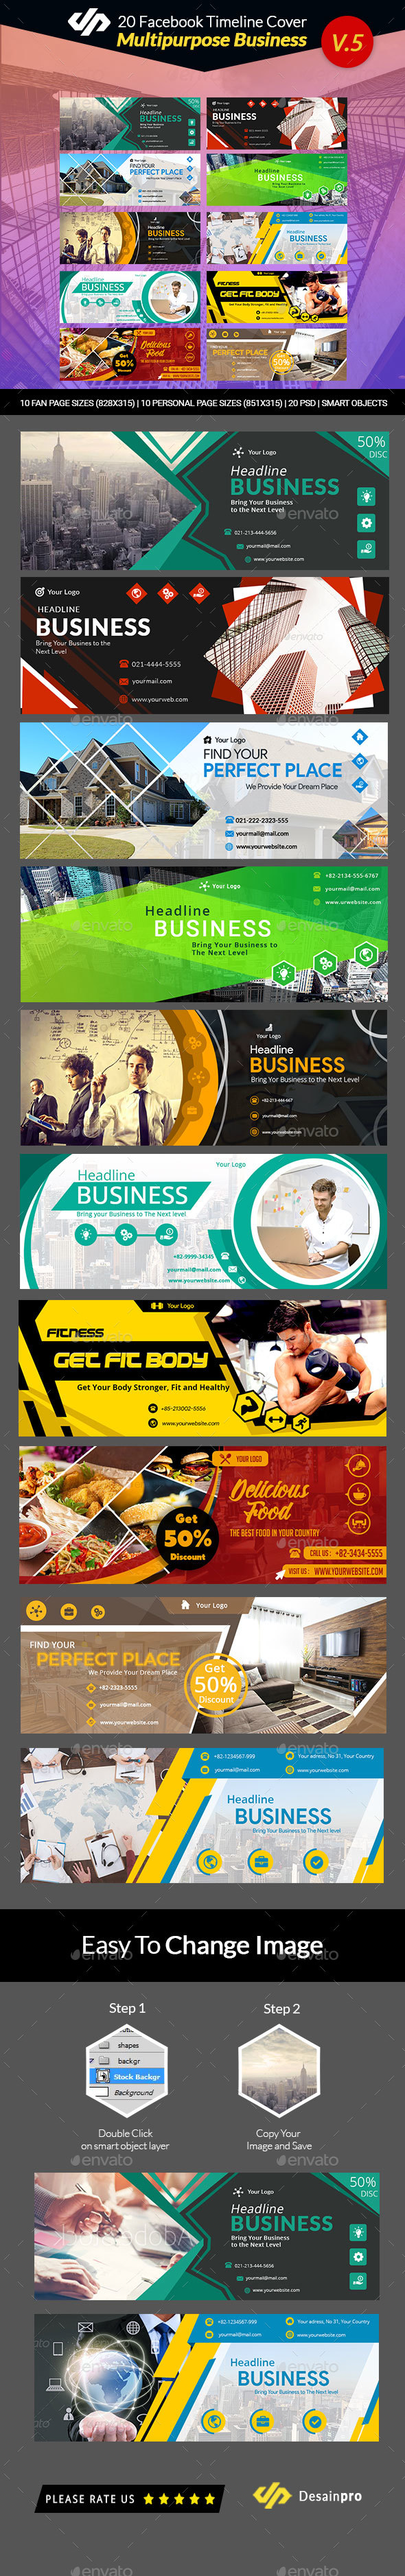 20 Multipurpose Facebook Timeline Covers V5 - AR - Facebook Timeline Covers Social Media